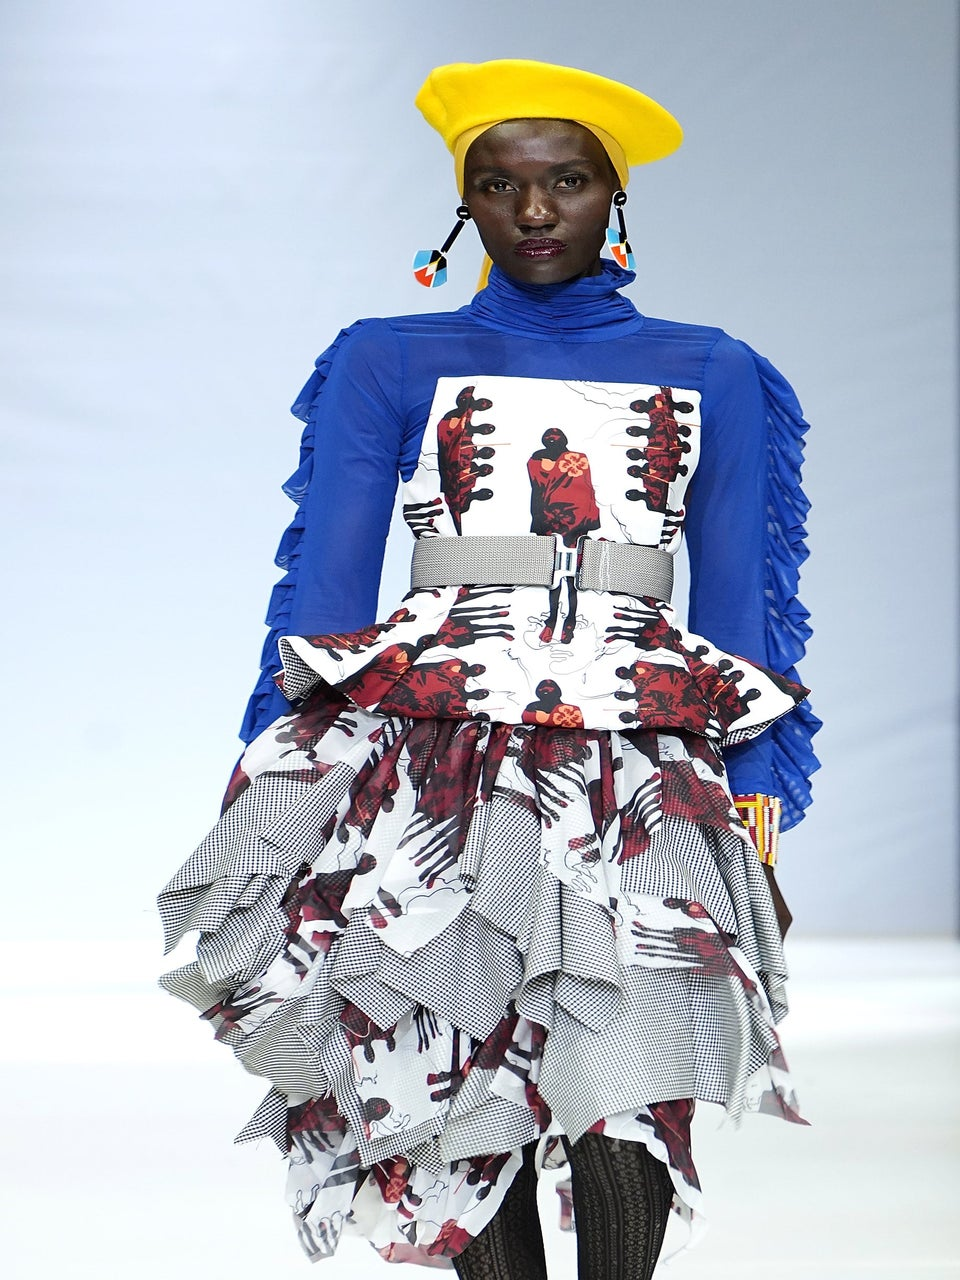 South African Fashion Week Commemorates 21 Years Of Highlighting African Designers